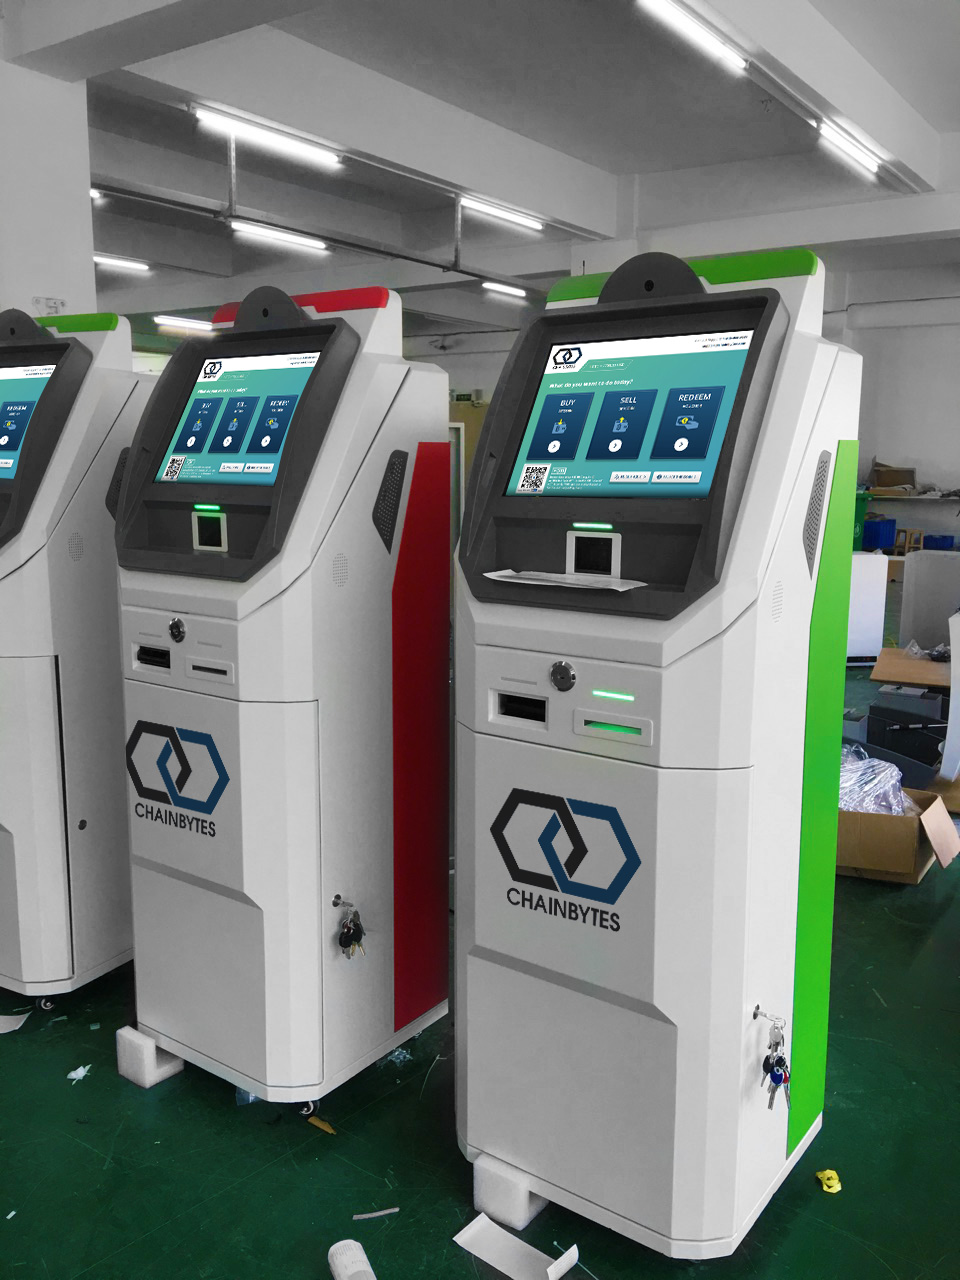 Sell and Buy Bitcoin ATM machines production by ChainBytes